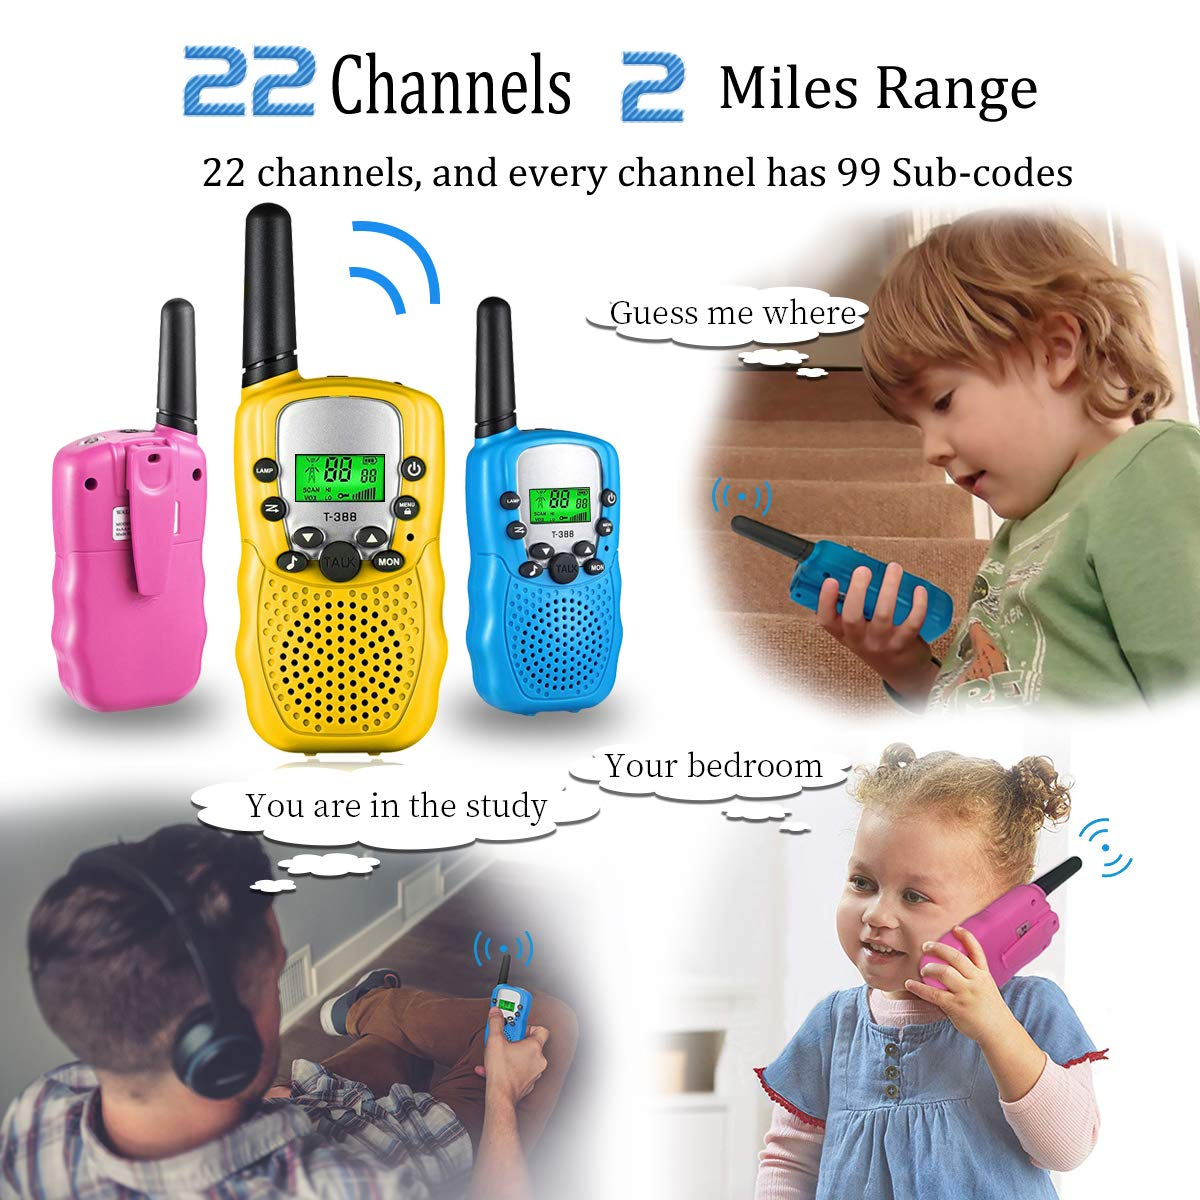 Outdoor Toys for 5-10 Year Old Boys Girls Pussan Kids Walkie Talkies 3 Pack Long Range 2 Miles 22 Channels Kids Camping Outside Summer Games Walky Talky for Children Gifts by Pussan (Image #3)